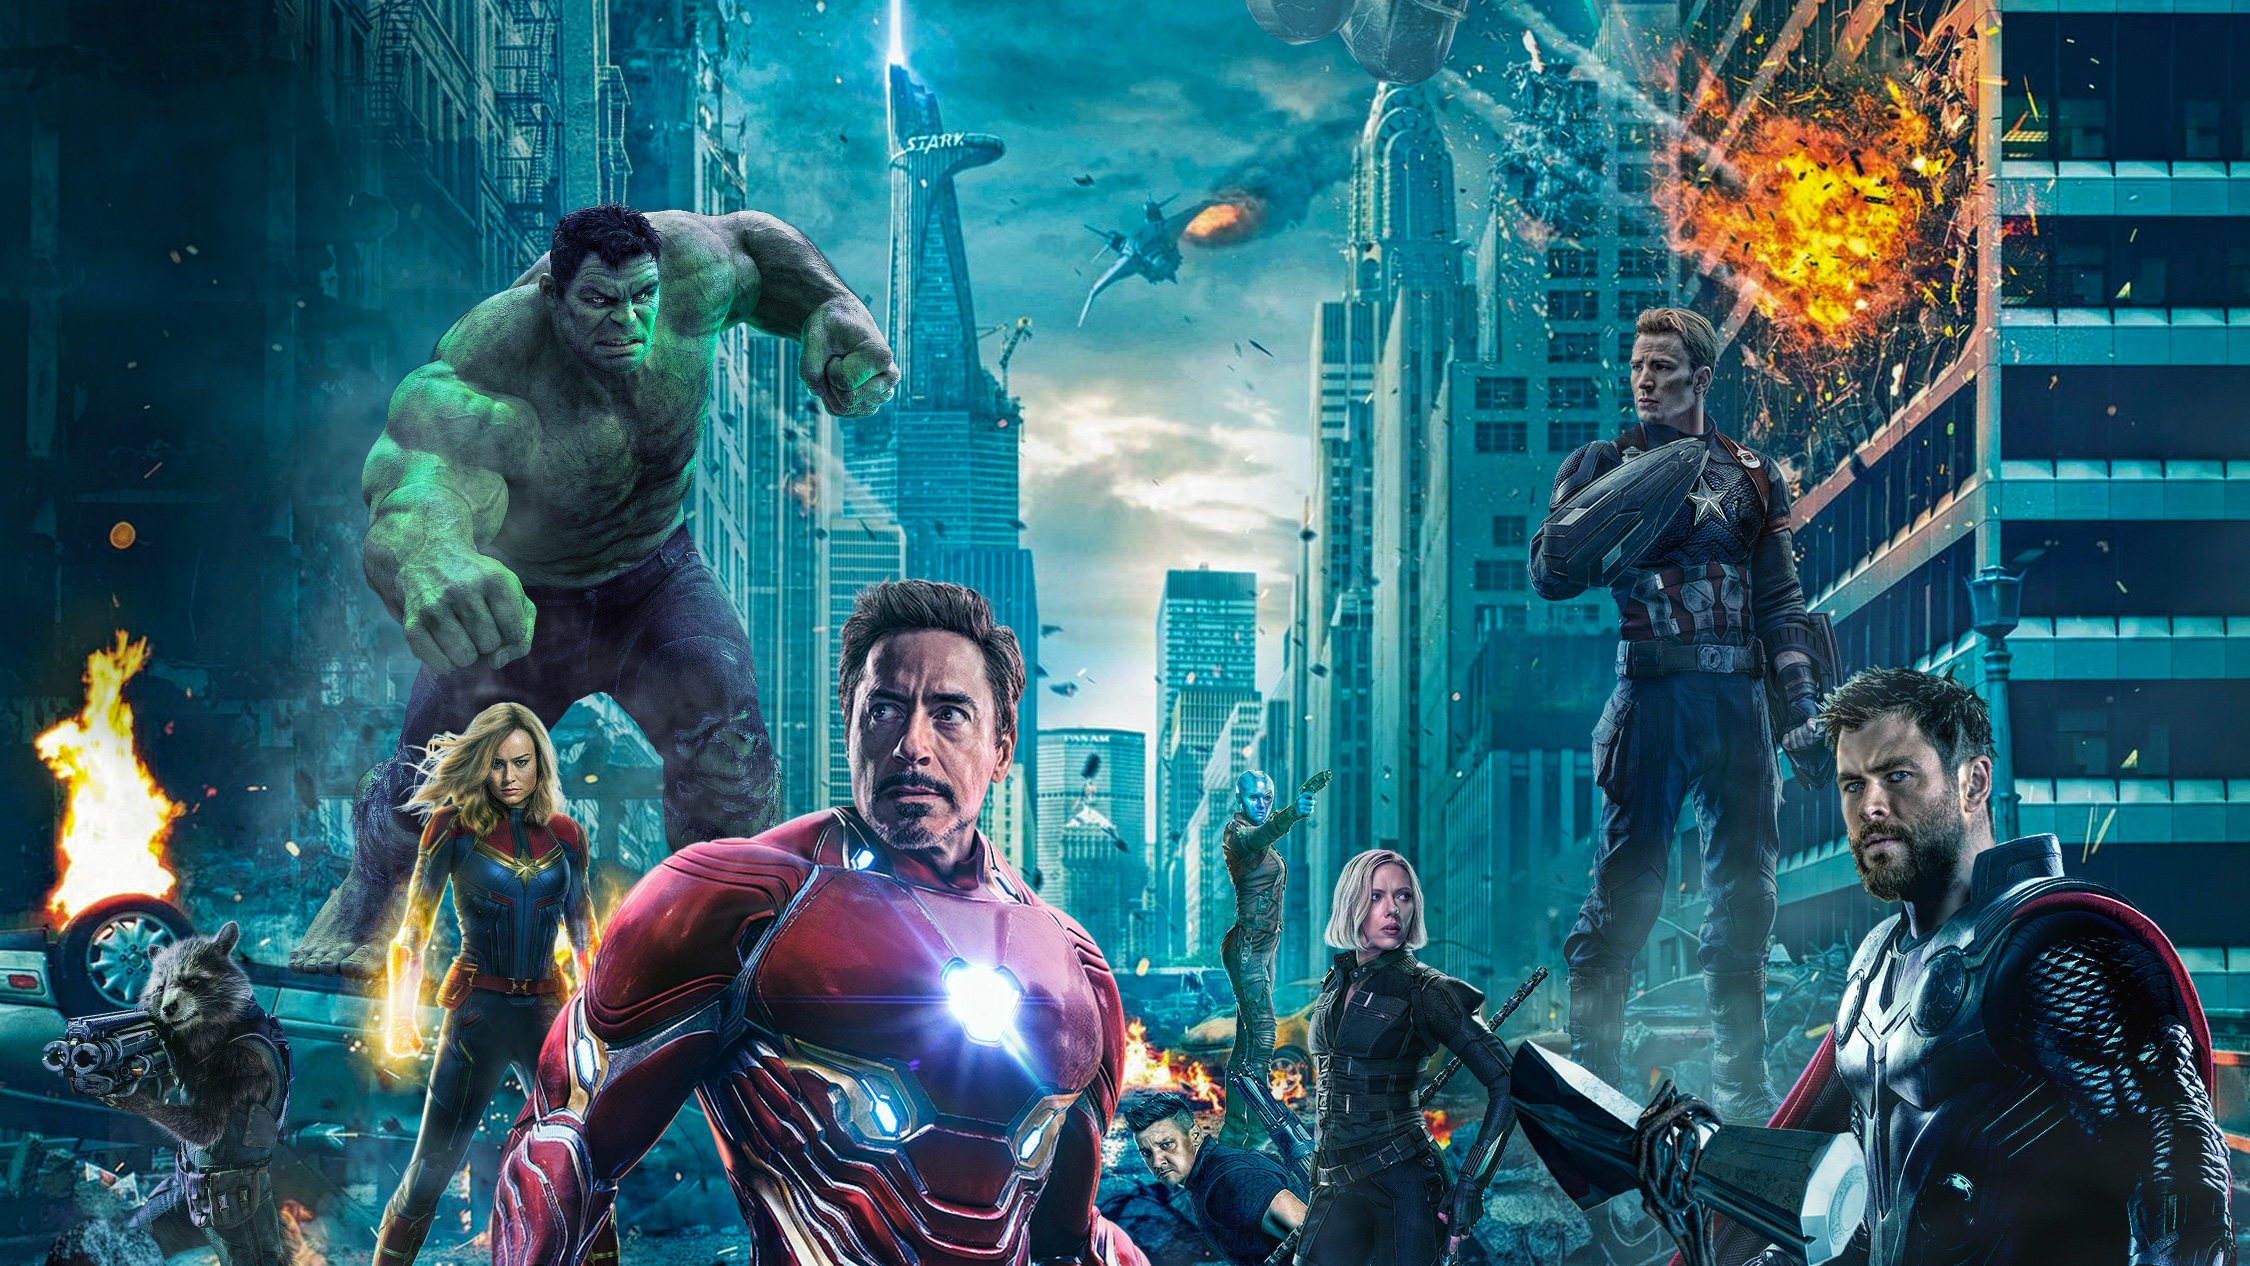 Avengers 4 Wallpapers: Avengers 4 Battle At New York, HD Movies, 4k Wallpapers